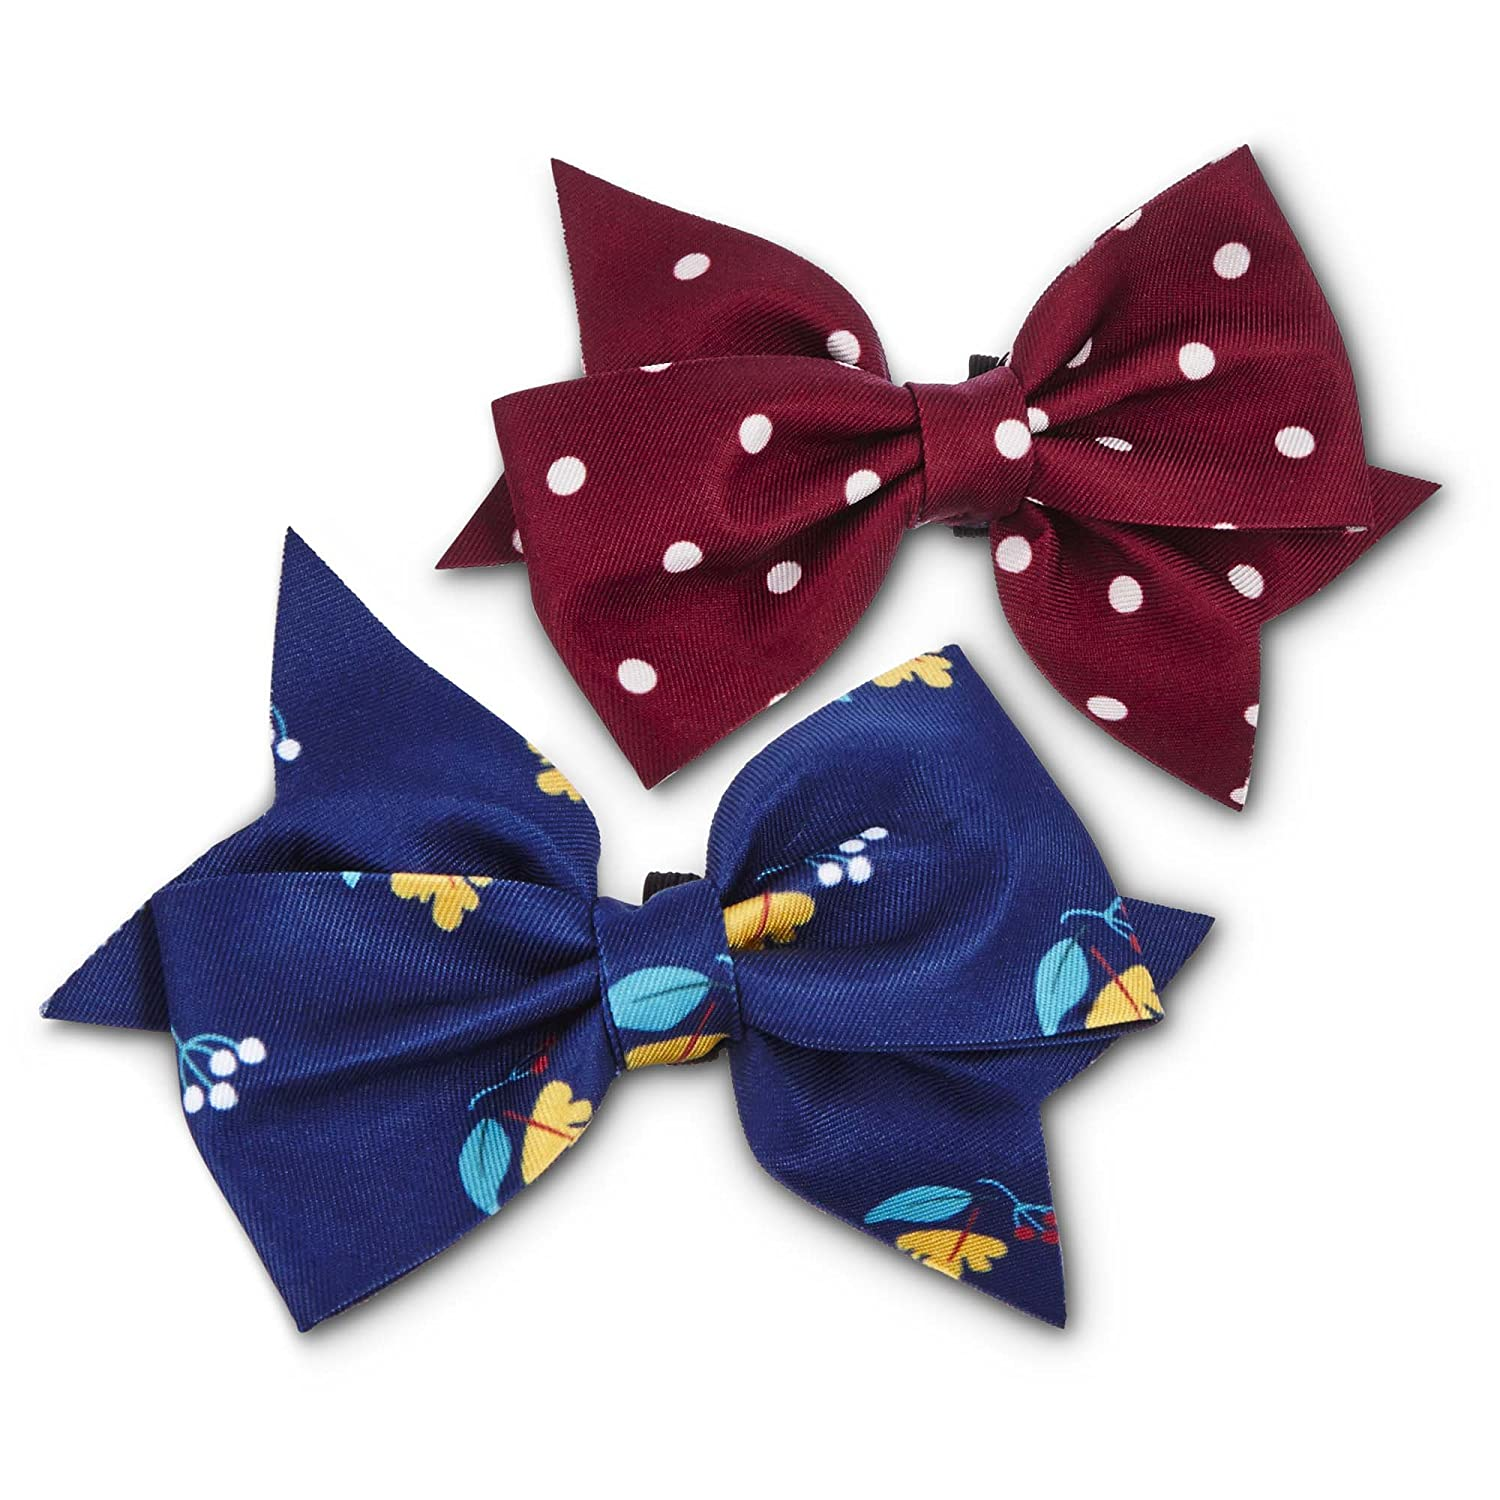 One Size Fits All Bond & Co. Dot and Floral Dog Bows, 2 PK, One Size Fits All, Burgundy